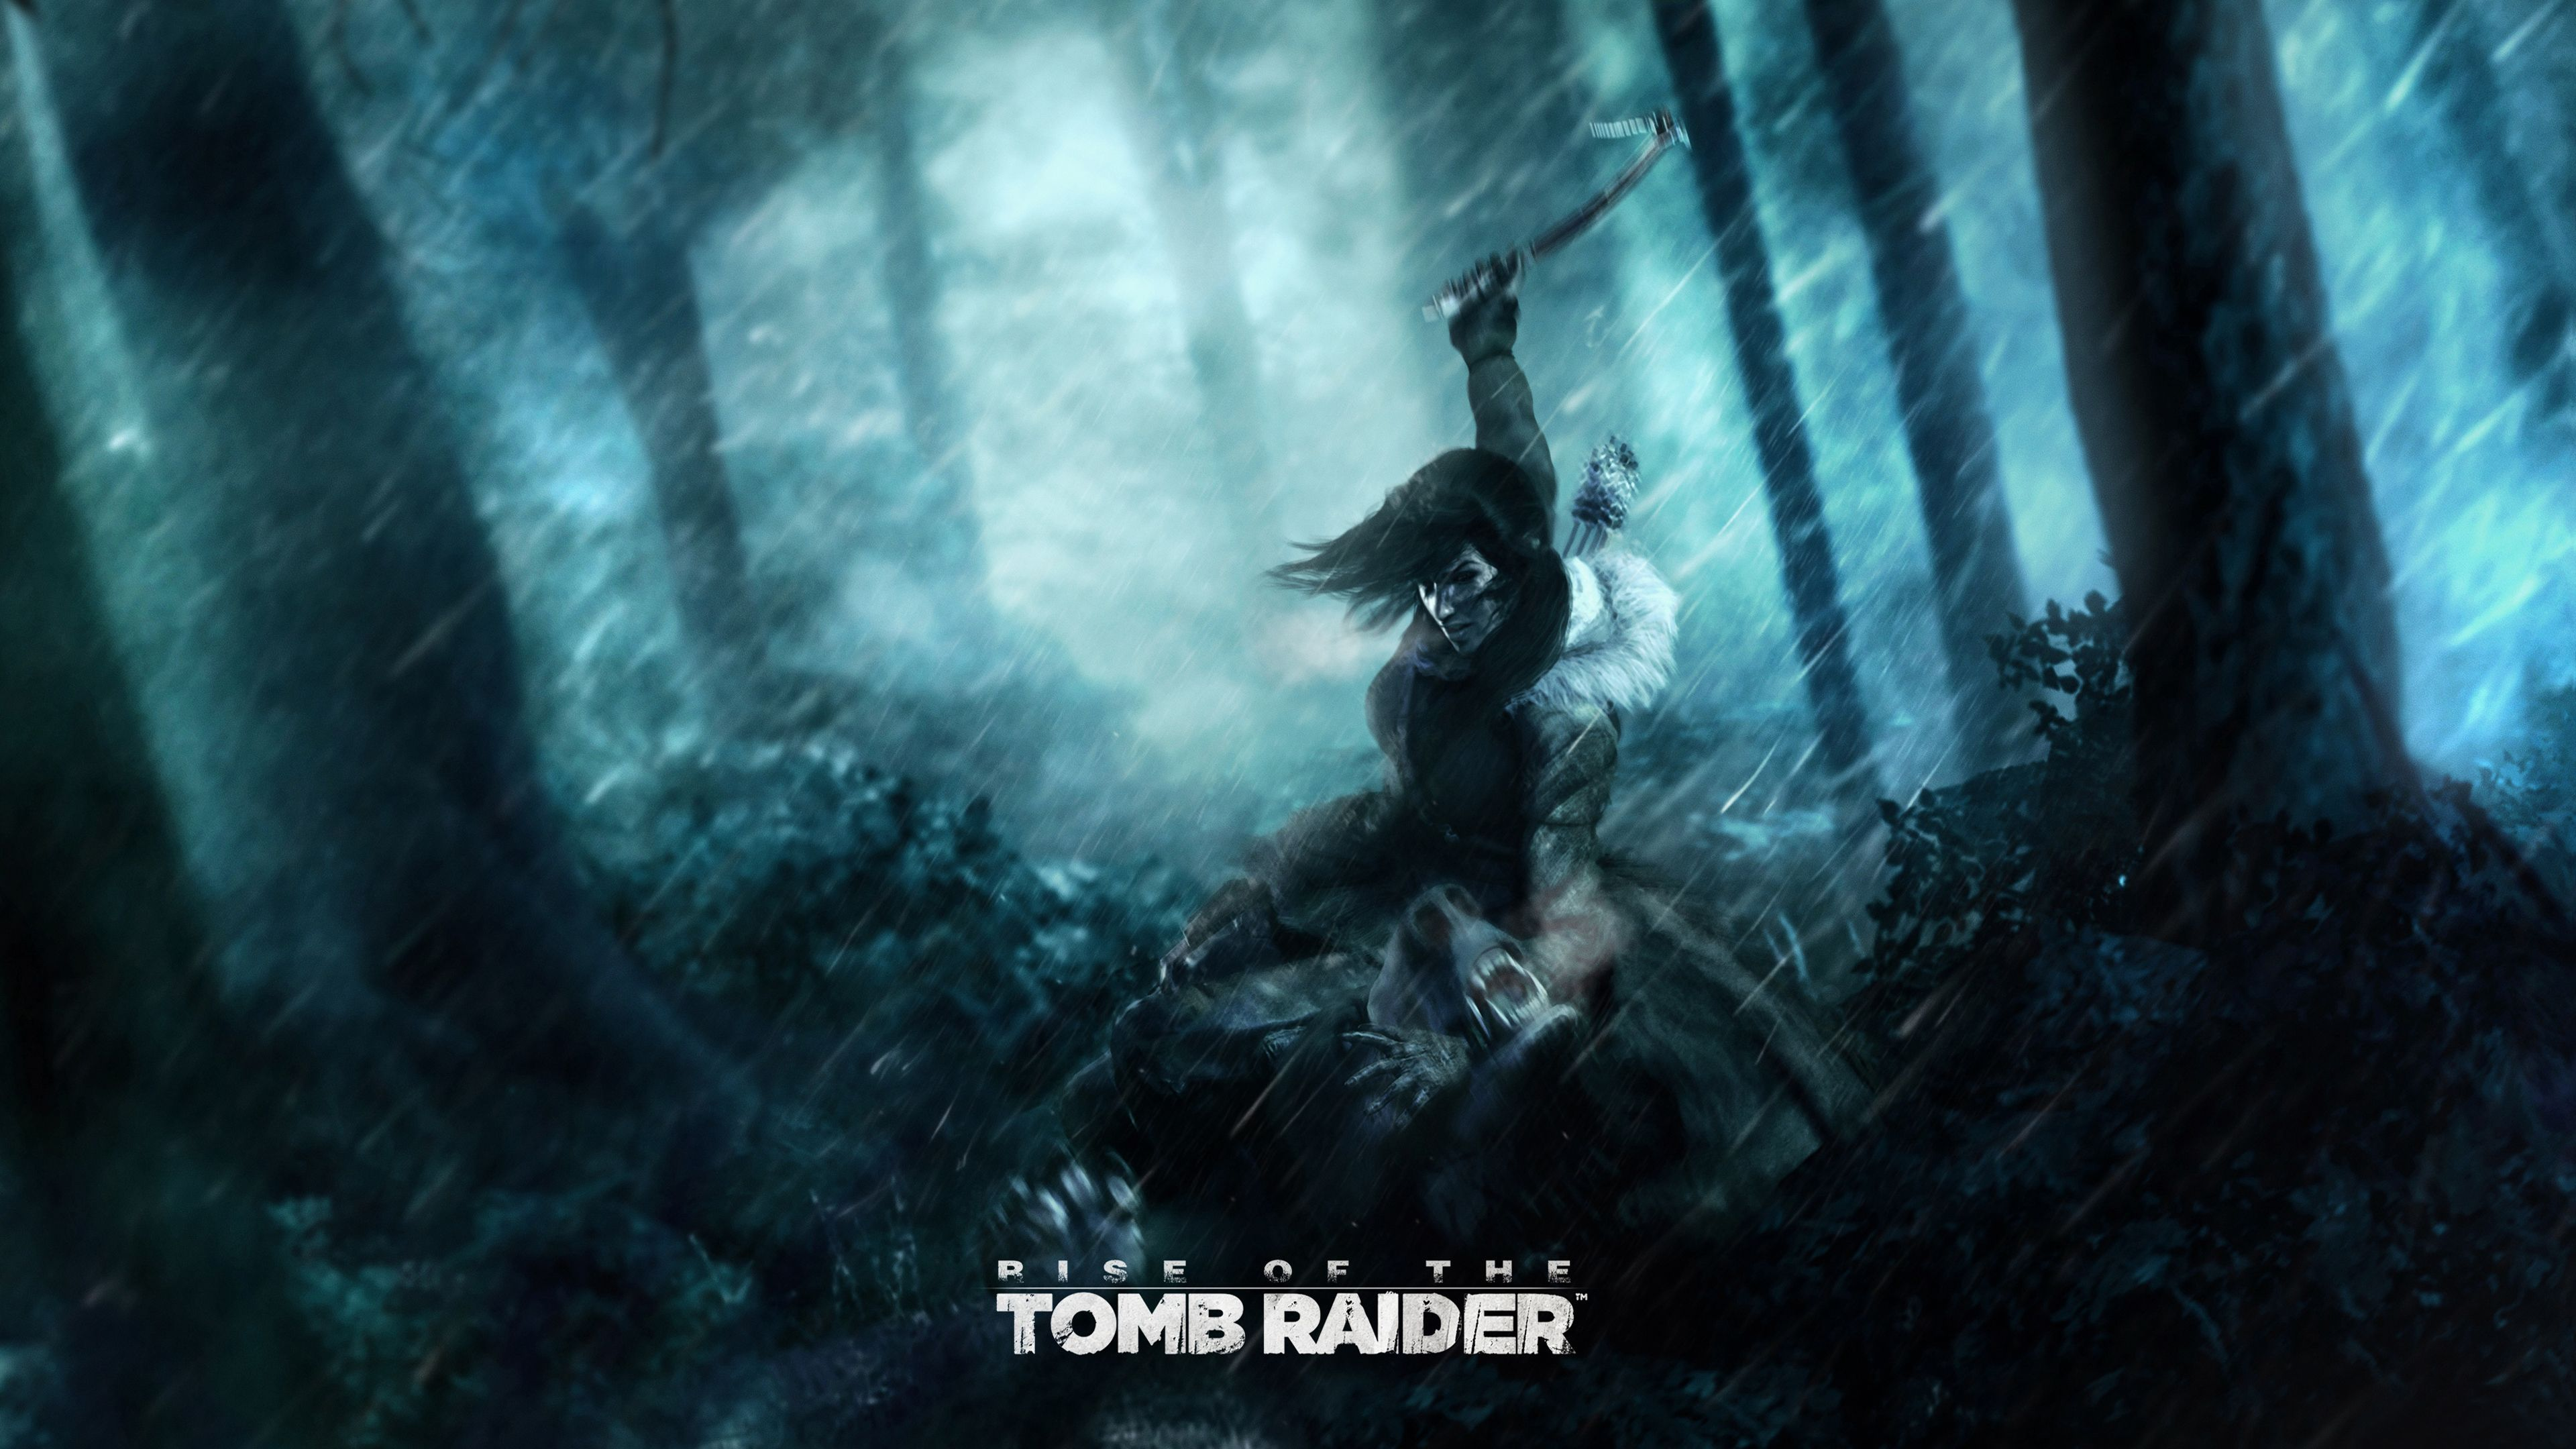 Rise Of The Tomb Raider 4k Ultra Hd Wallpaper Background Image